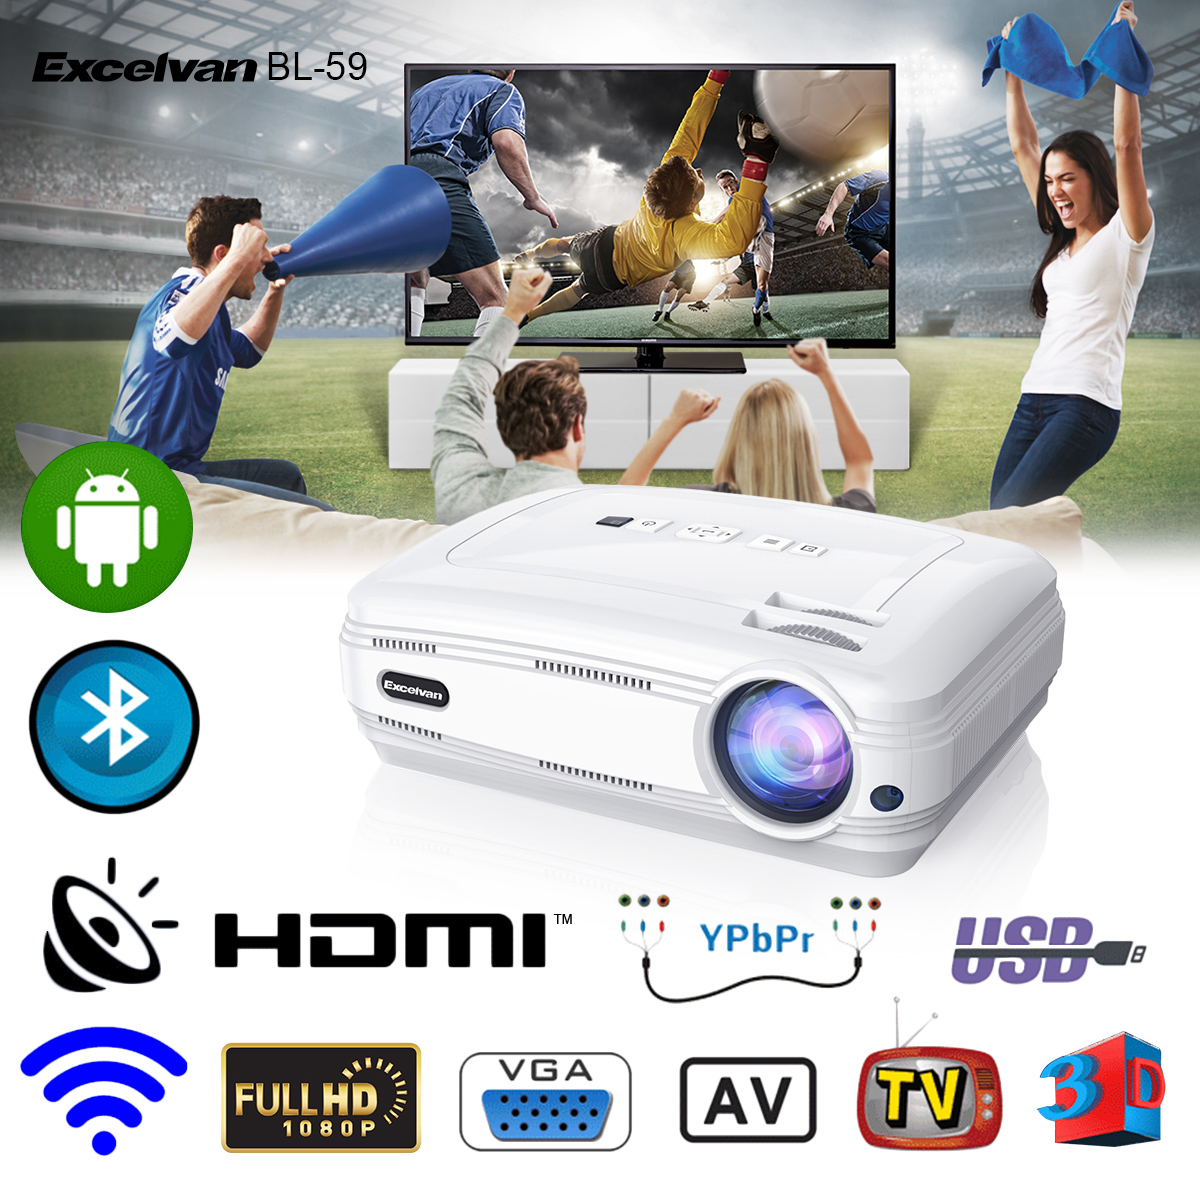 Excelvan BL-59 Android 6.0.1 3200 Lumens 1280*768 200 Inch Multimedia Projector Support Red&Blue 3D 1080P WiFi Bluetooth 1G+8G ATV For Home Theater Game Outdoor Movie